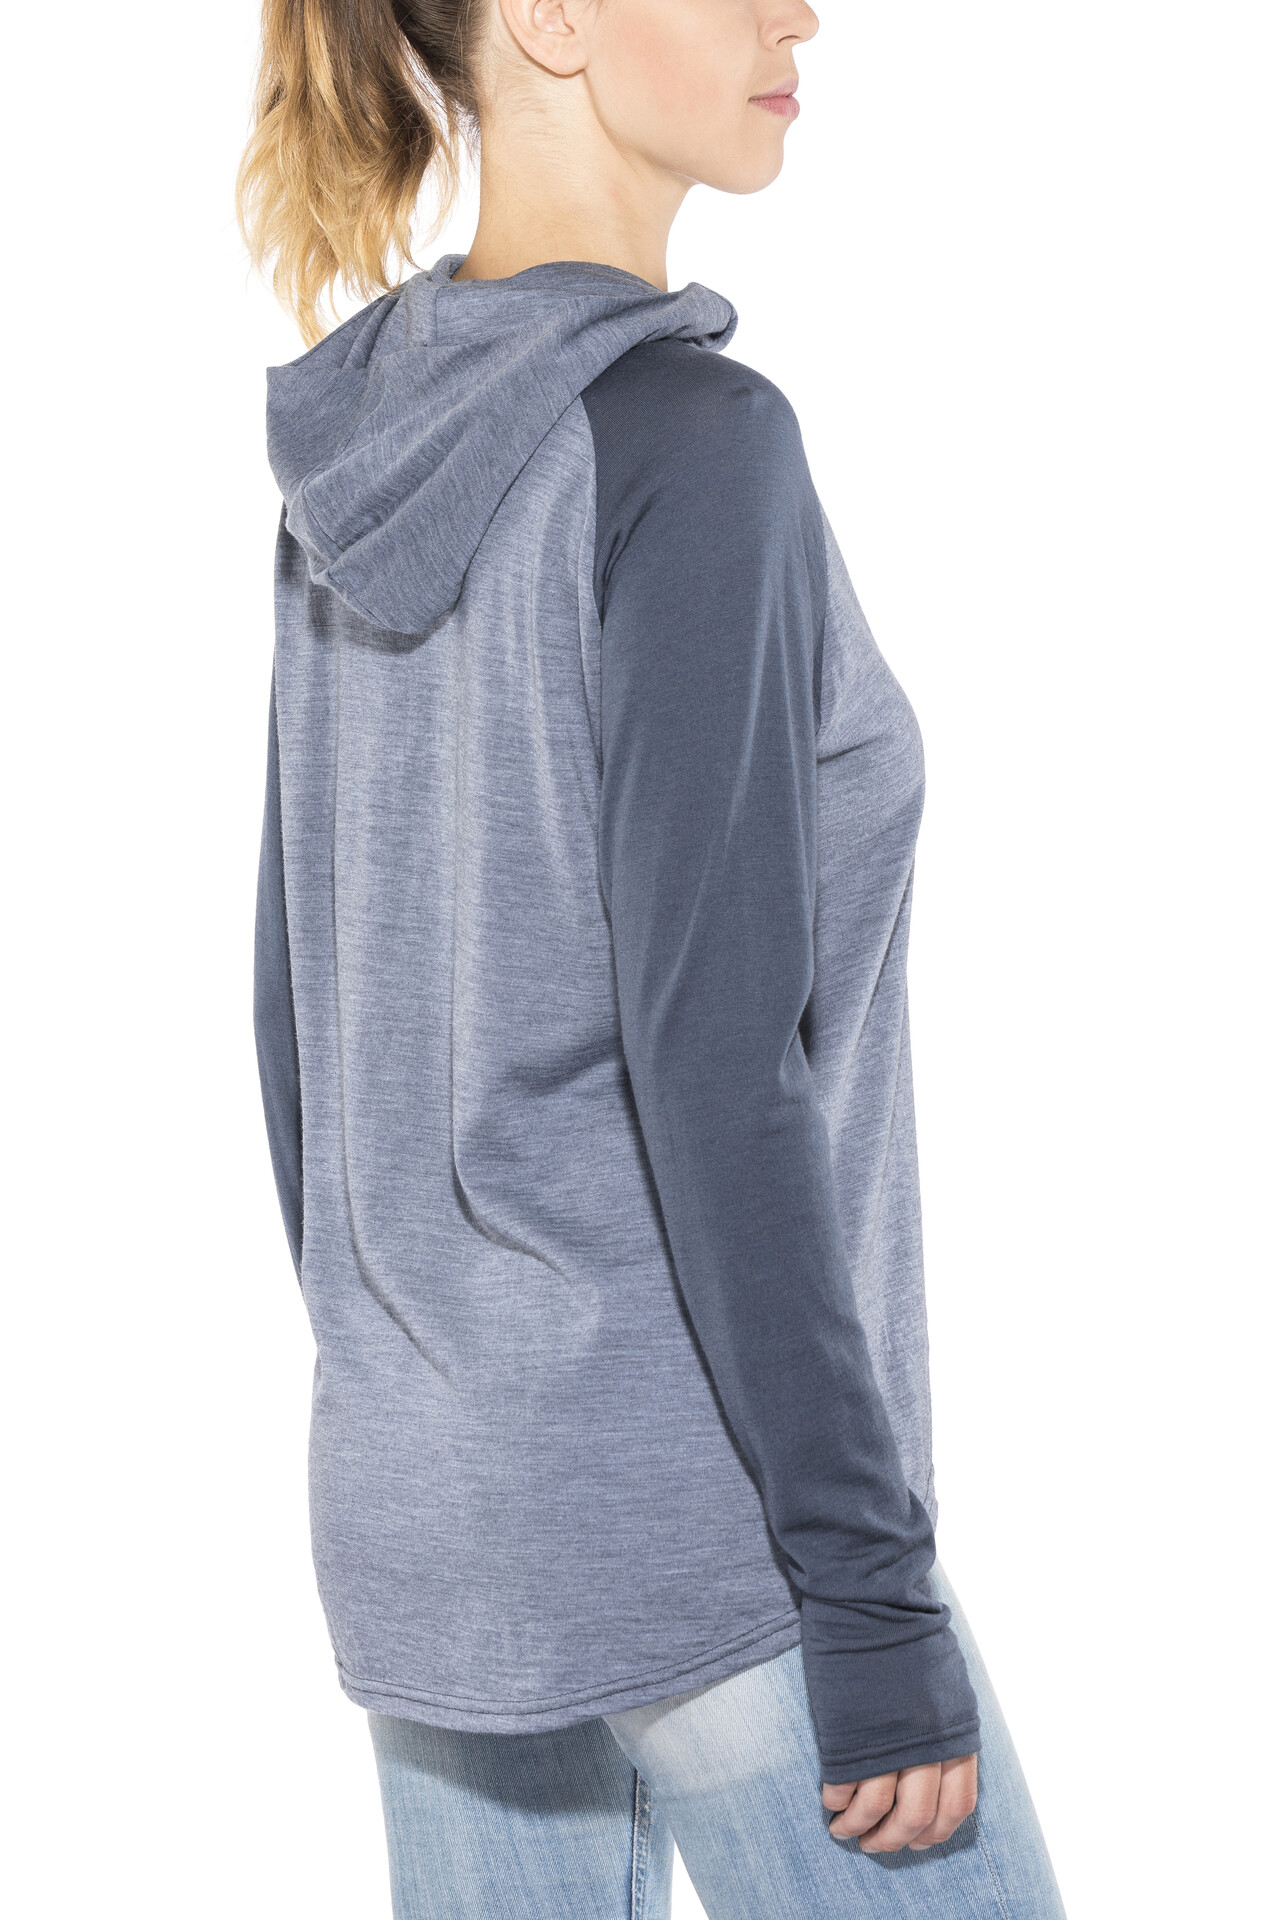 20+ Hoodie At Night Pictures and Ideas on Weric